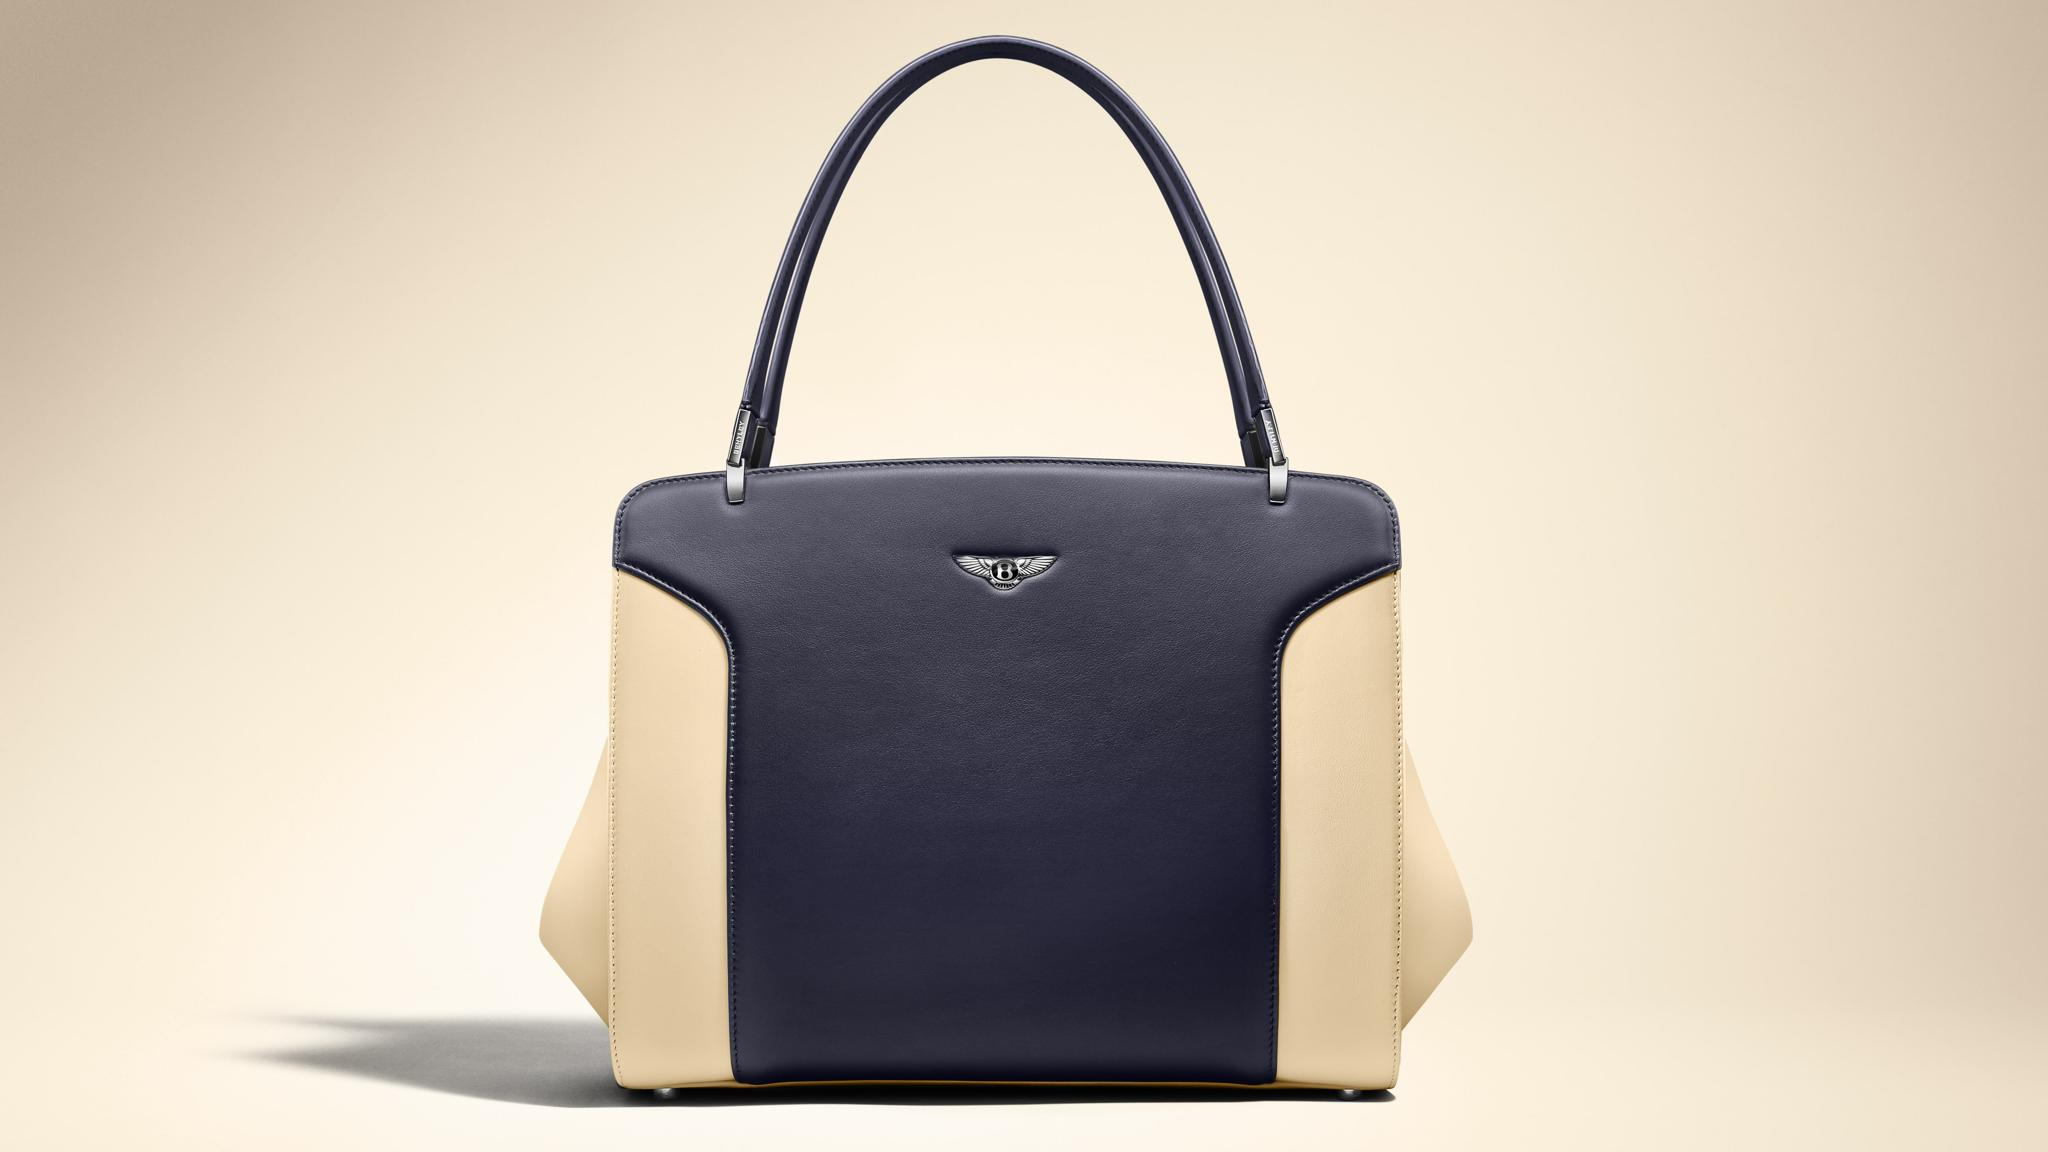 fe72fc4ee78c Handbags  a shift of gear for Mercedes-Benz and Bentley